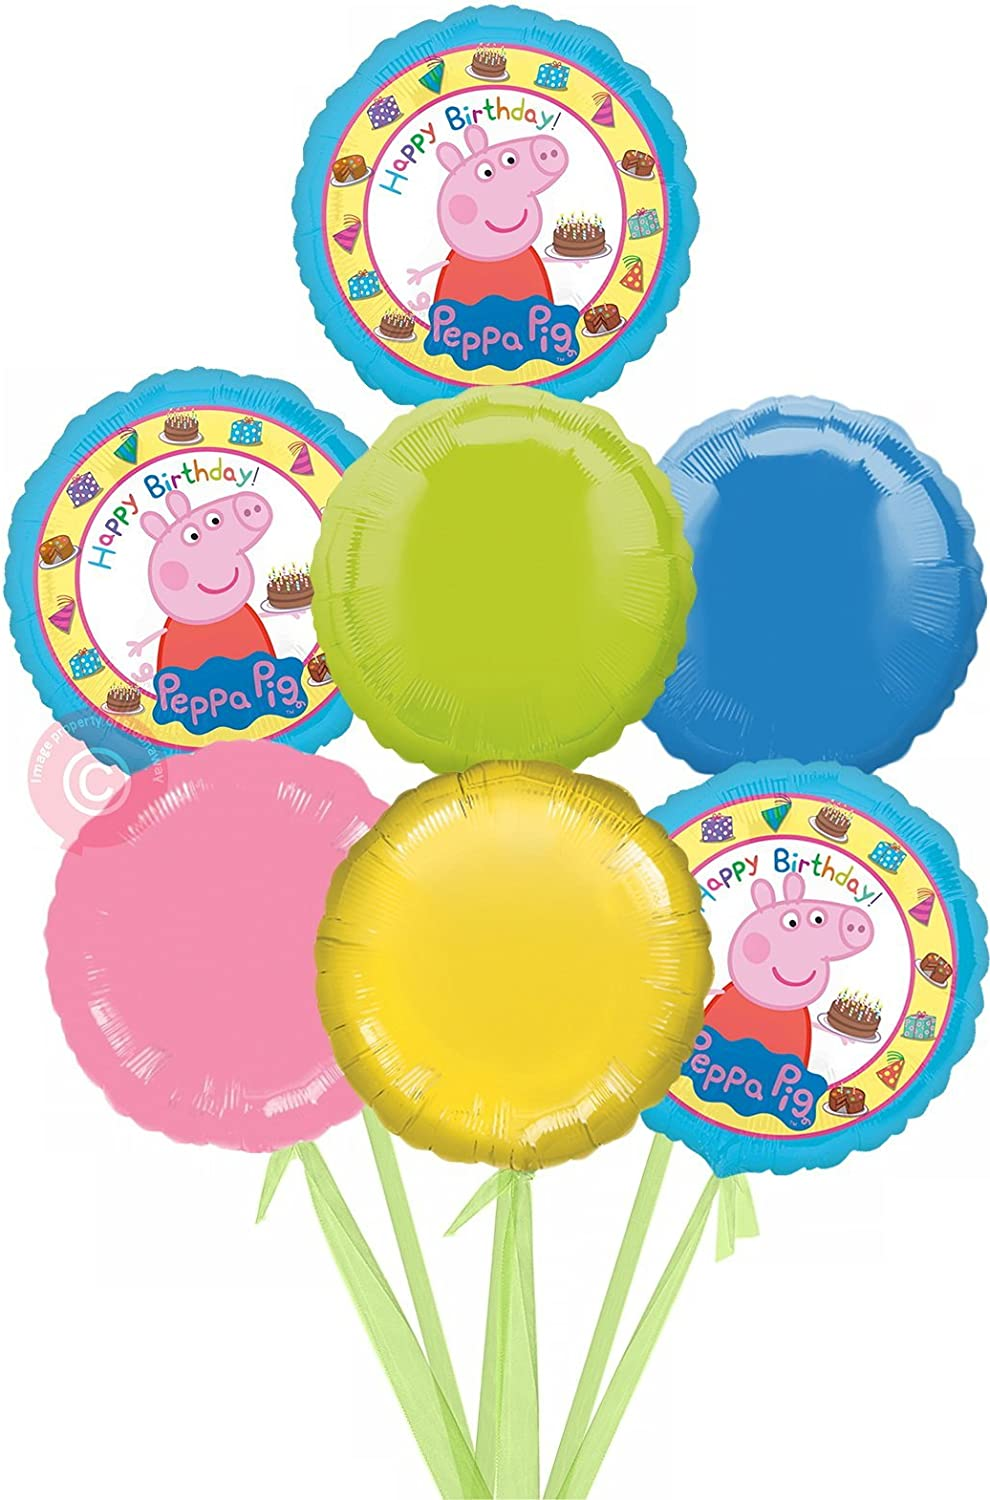 Peppa Pig Happy Birthday  Inflated Birthday Helium Balloon Delivered in a Box  Bigger Bouquet  7 Balloons  Bloonaway